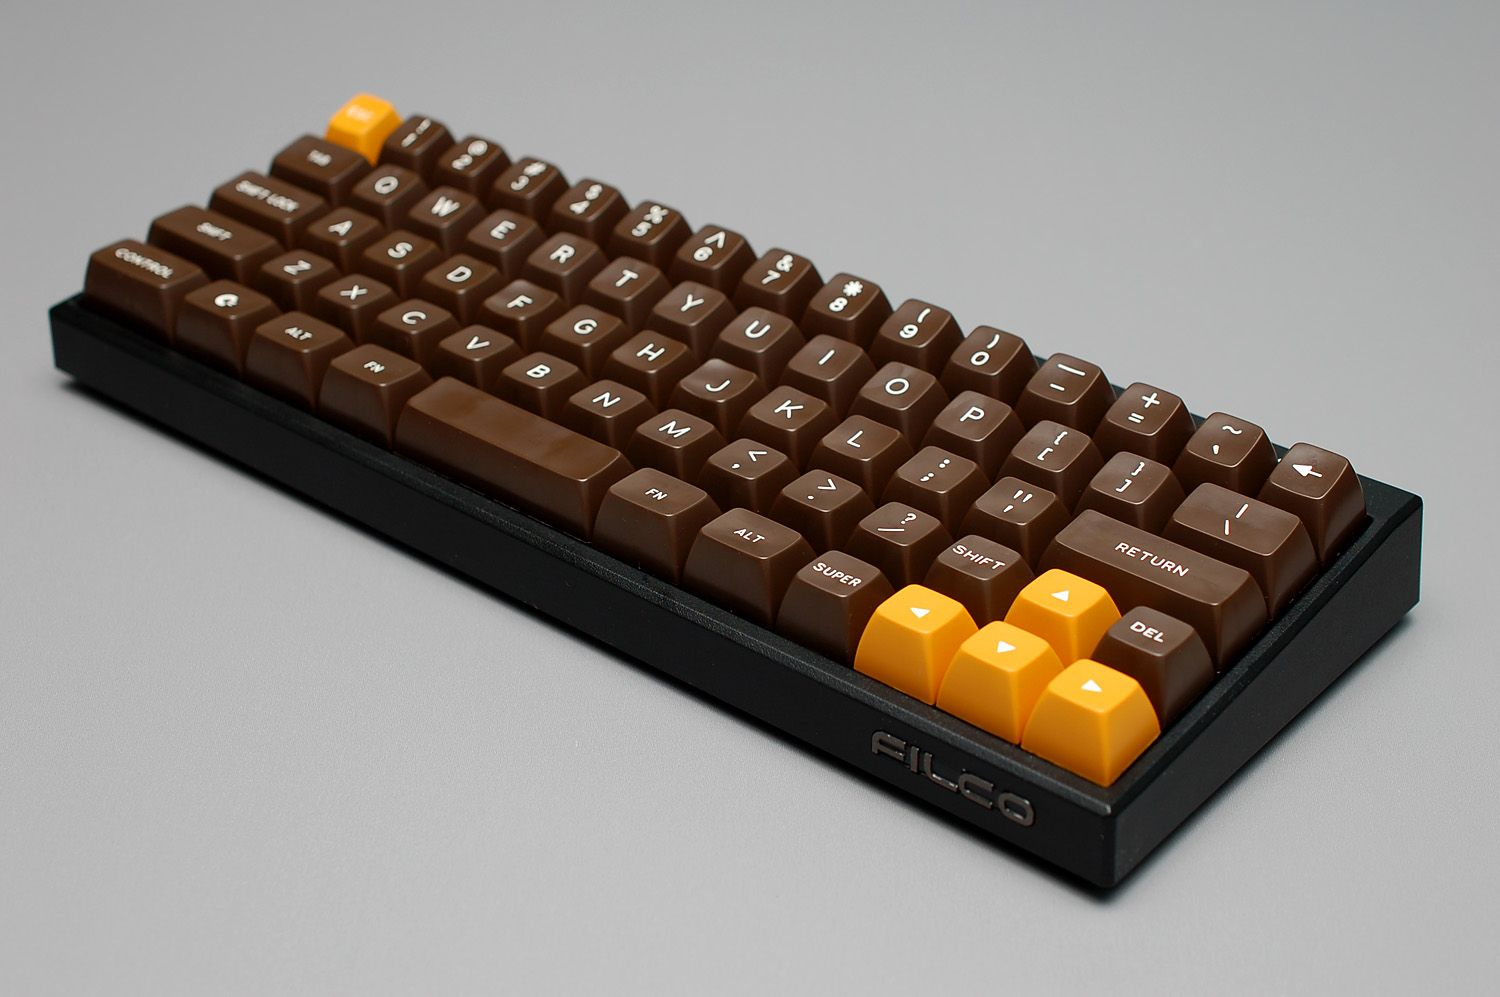 Filco MiniLa with Commodore 64C SA  The yellow keys came in an